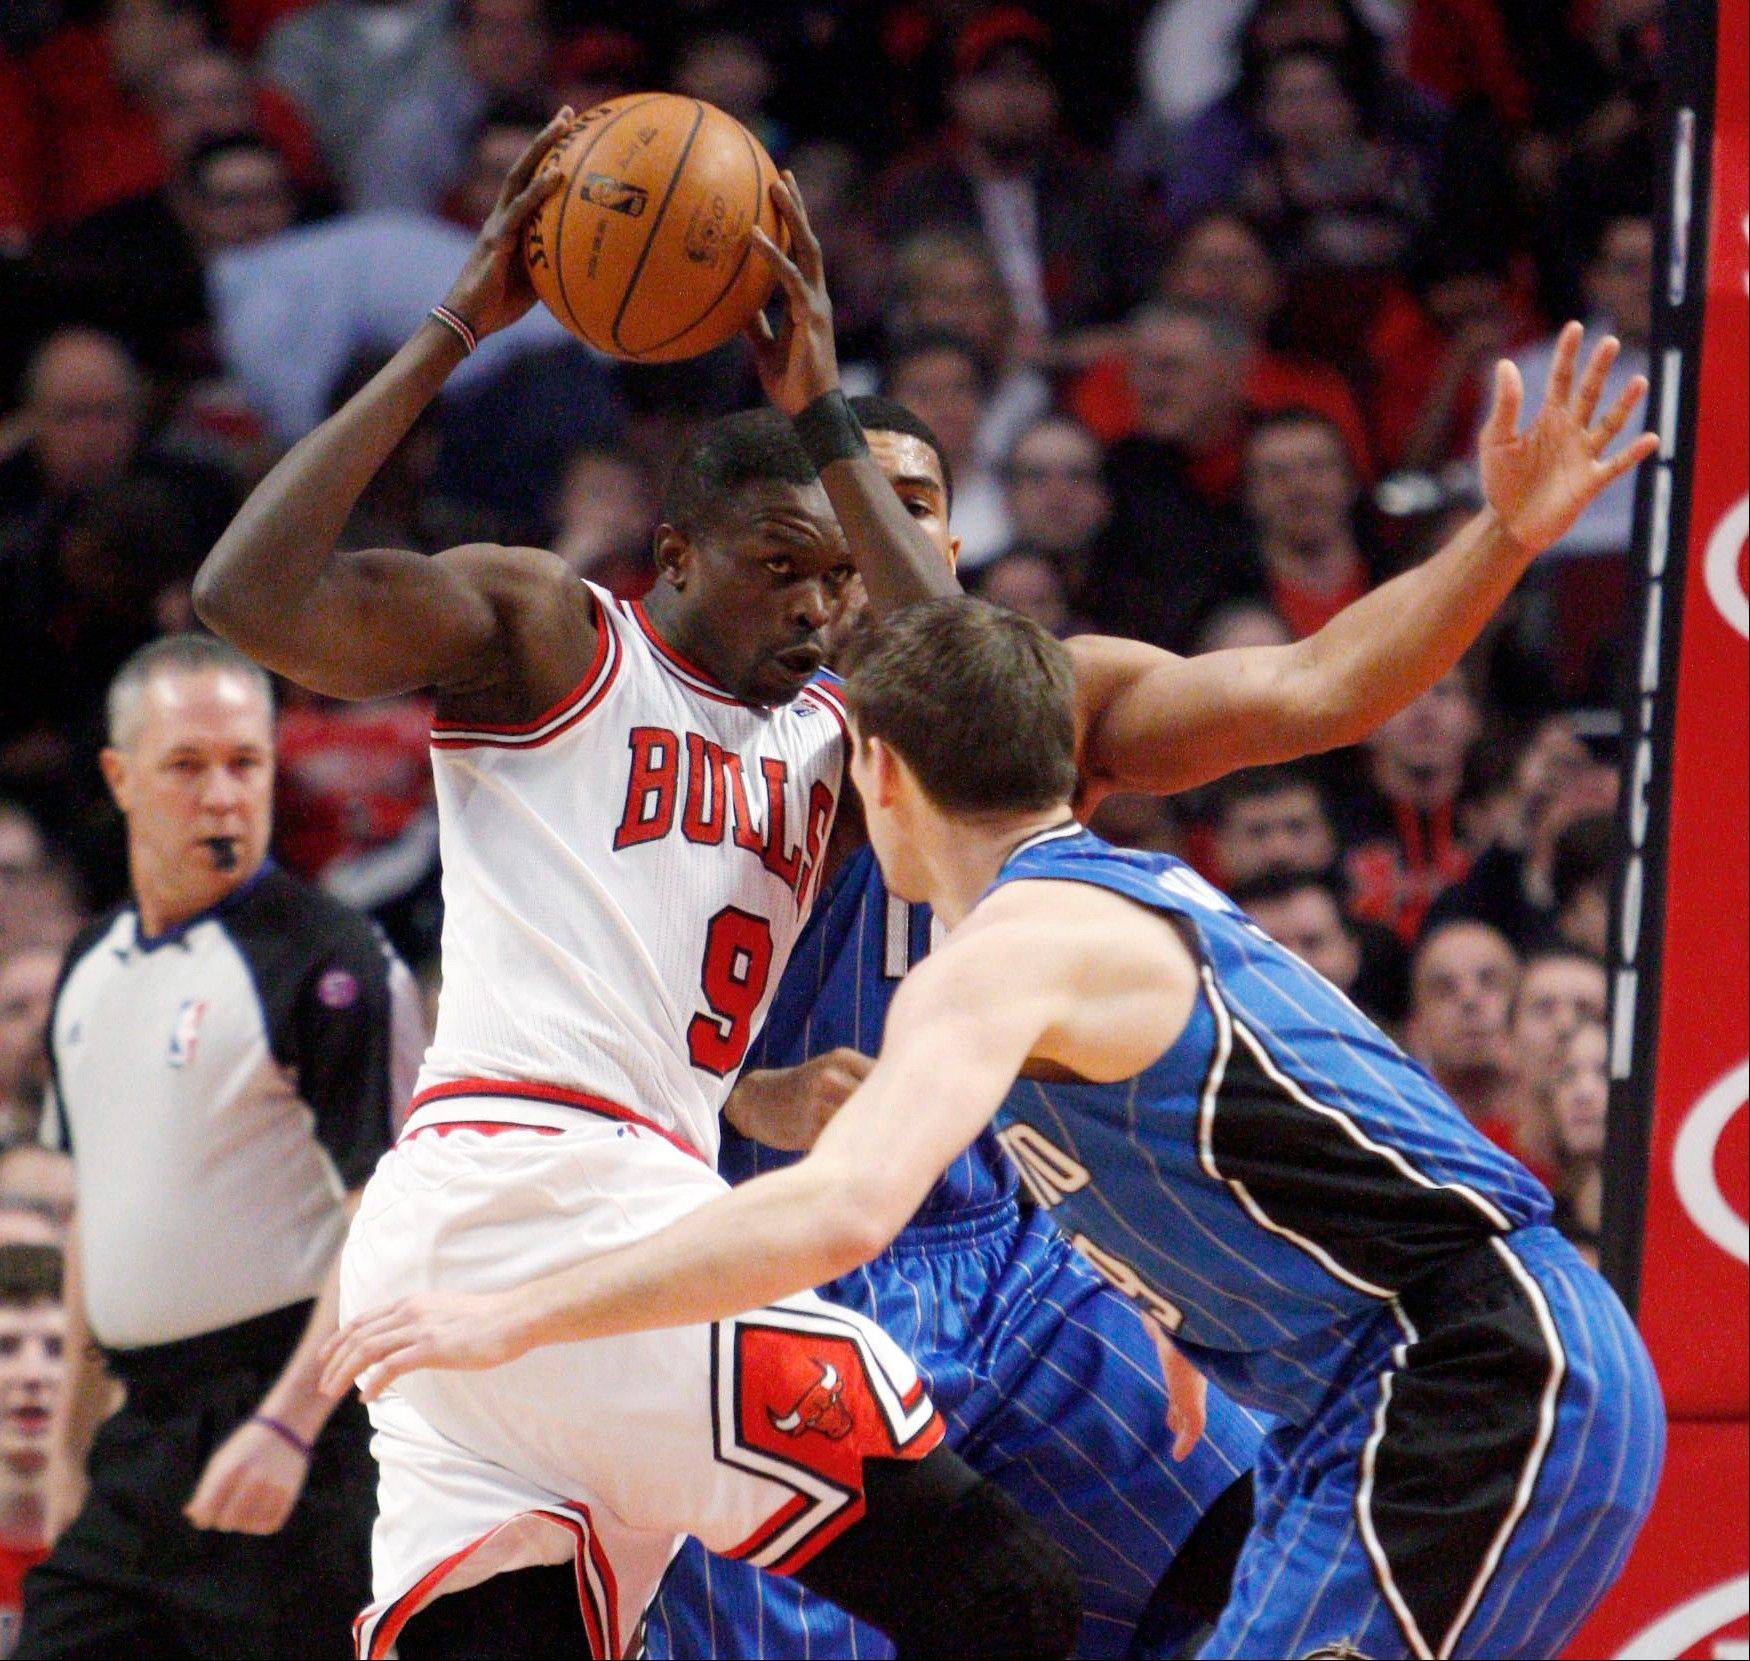 Chicago Bulls' Luol Deng drives between Orlando Magic's Beno Udrih, front, and Tobias Harris during the first half of an NBA basketball game Friday, April 5, 2013, in Chicago.